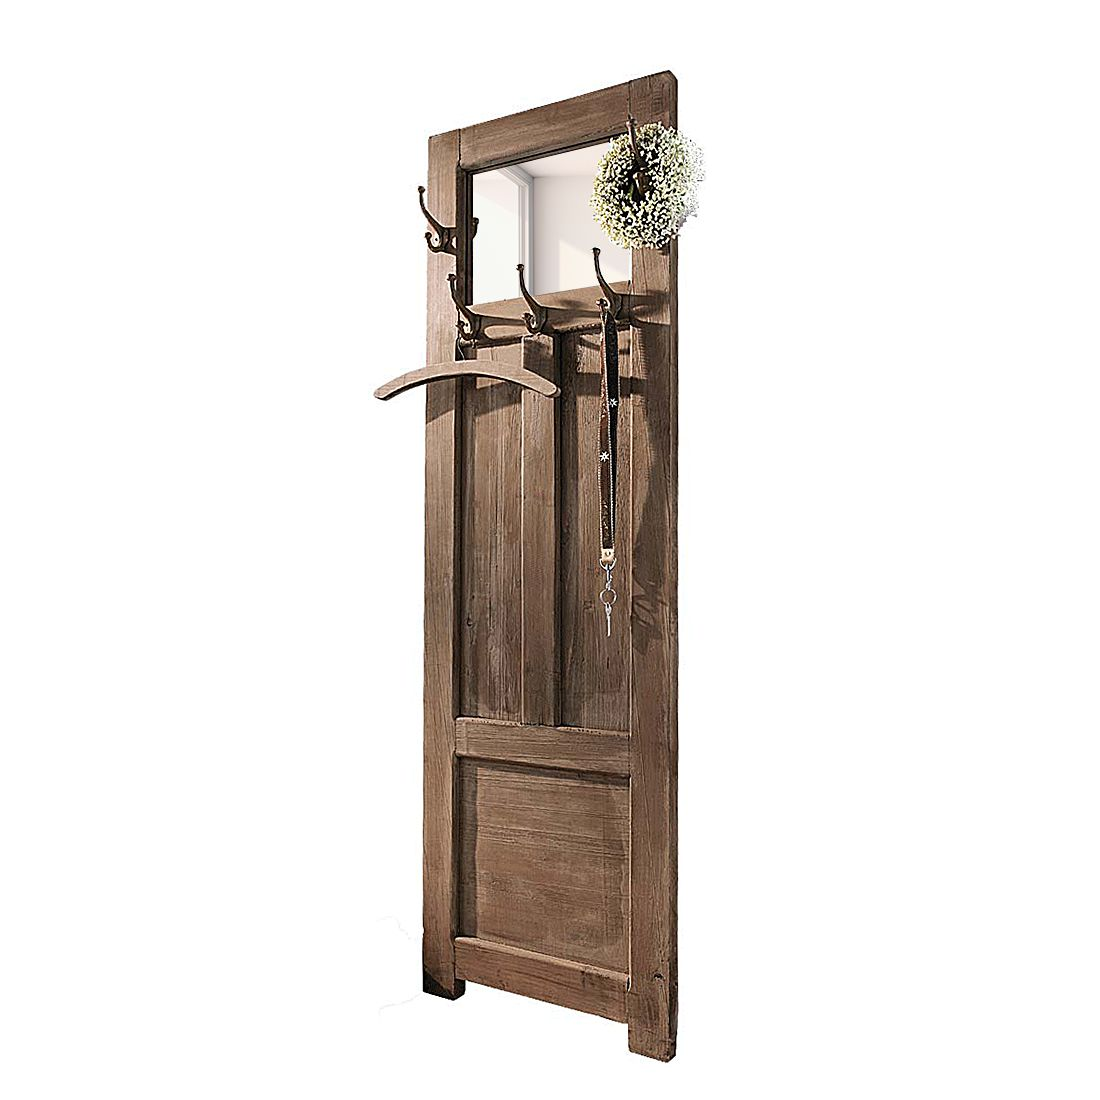 garderobe holz 1000 ideas about garderobe holz on pinterest diy piano coat rack by brussels. Black Bedroom Furniture Sets. Home Design Ideas